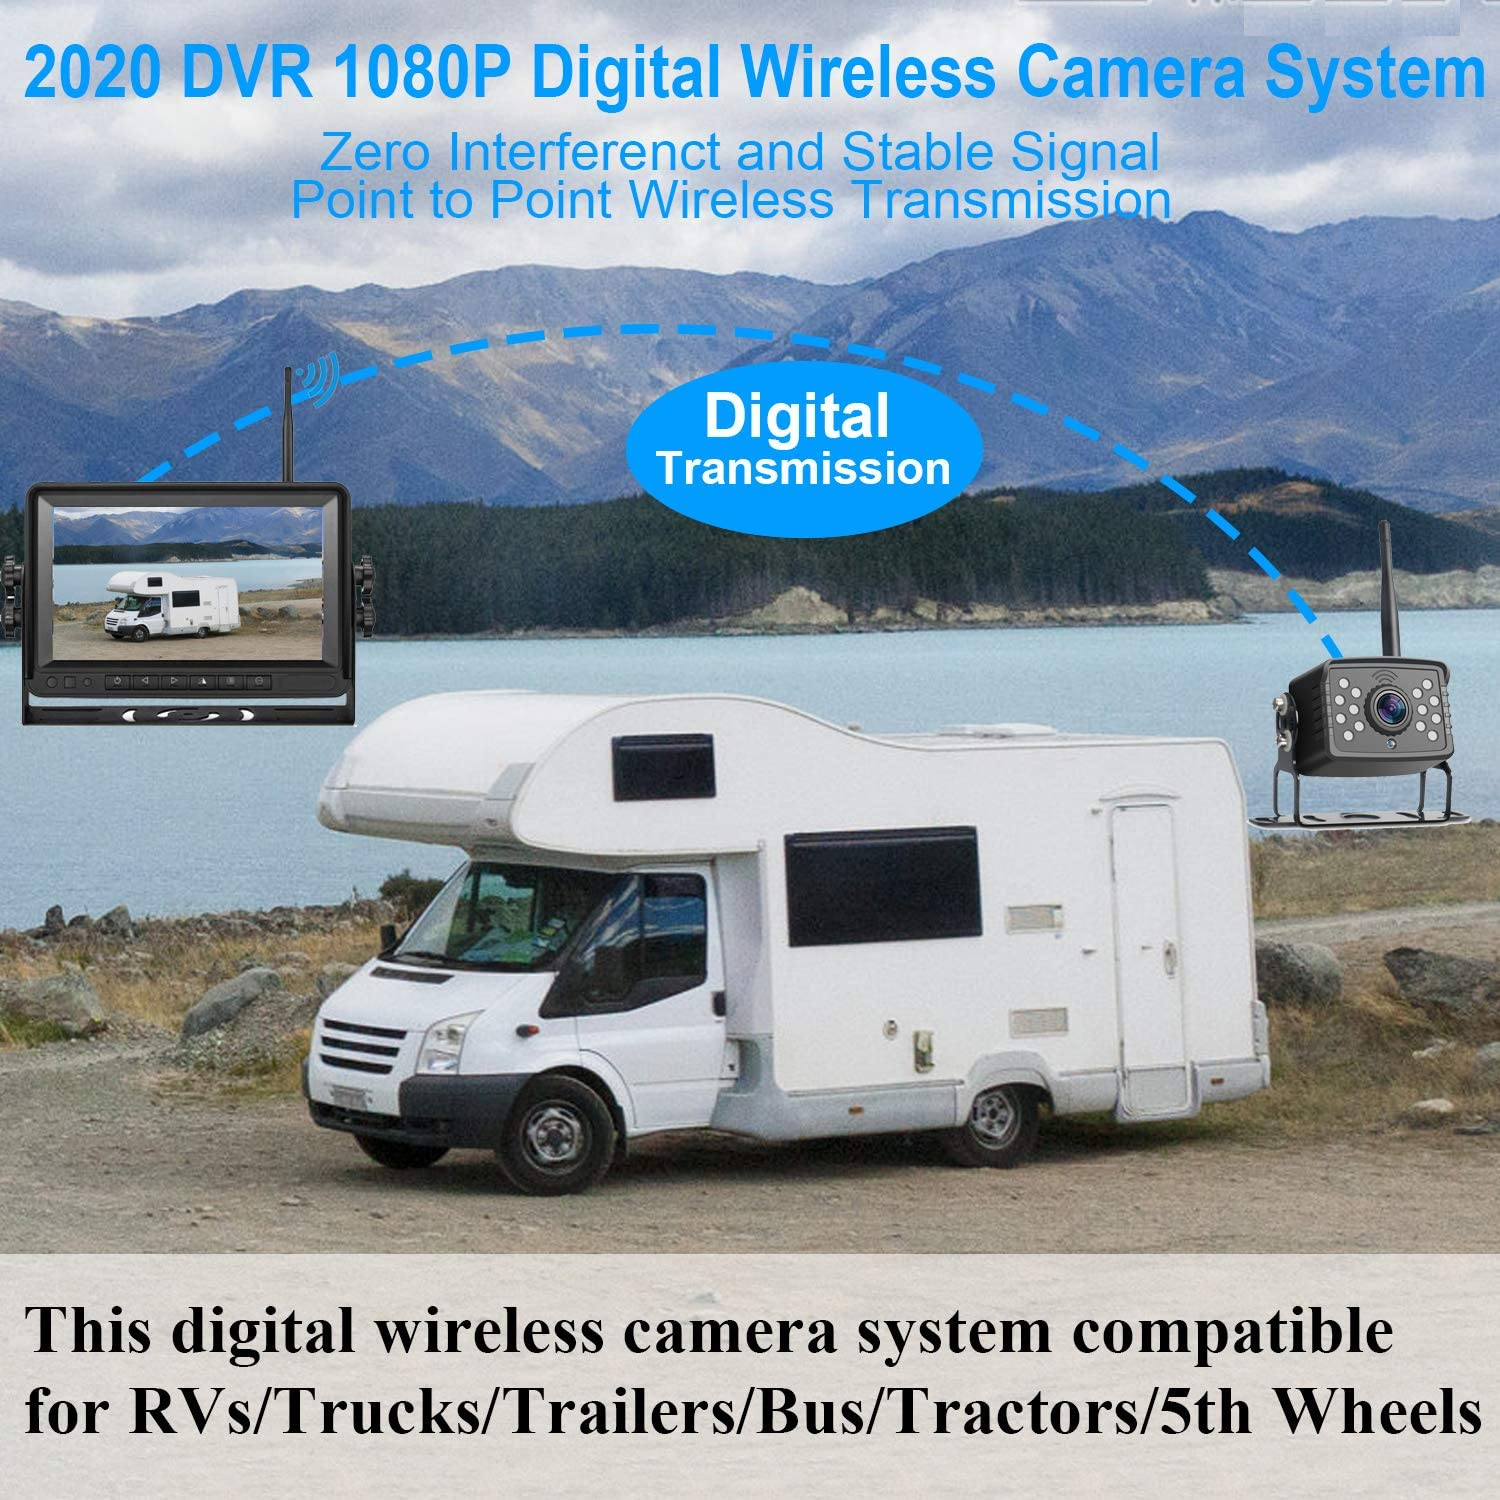 LeeKooLuu HD 1080P Digital Wireless Rear View 2 Cameras for RVs,Trailers,Bus,Motorhome,5th Wheels,Campers with 7 DVR Monitor High-Speed Observation System Super Night Vision IP69 Waterproof